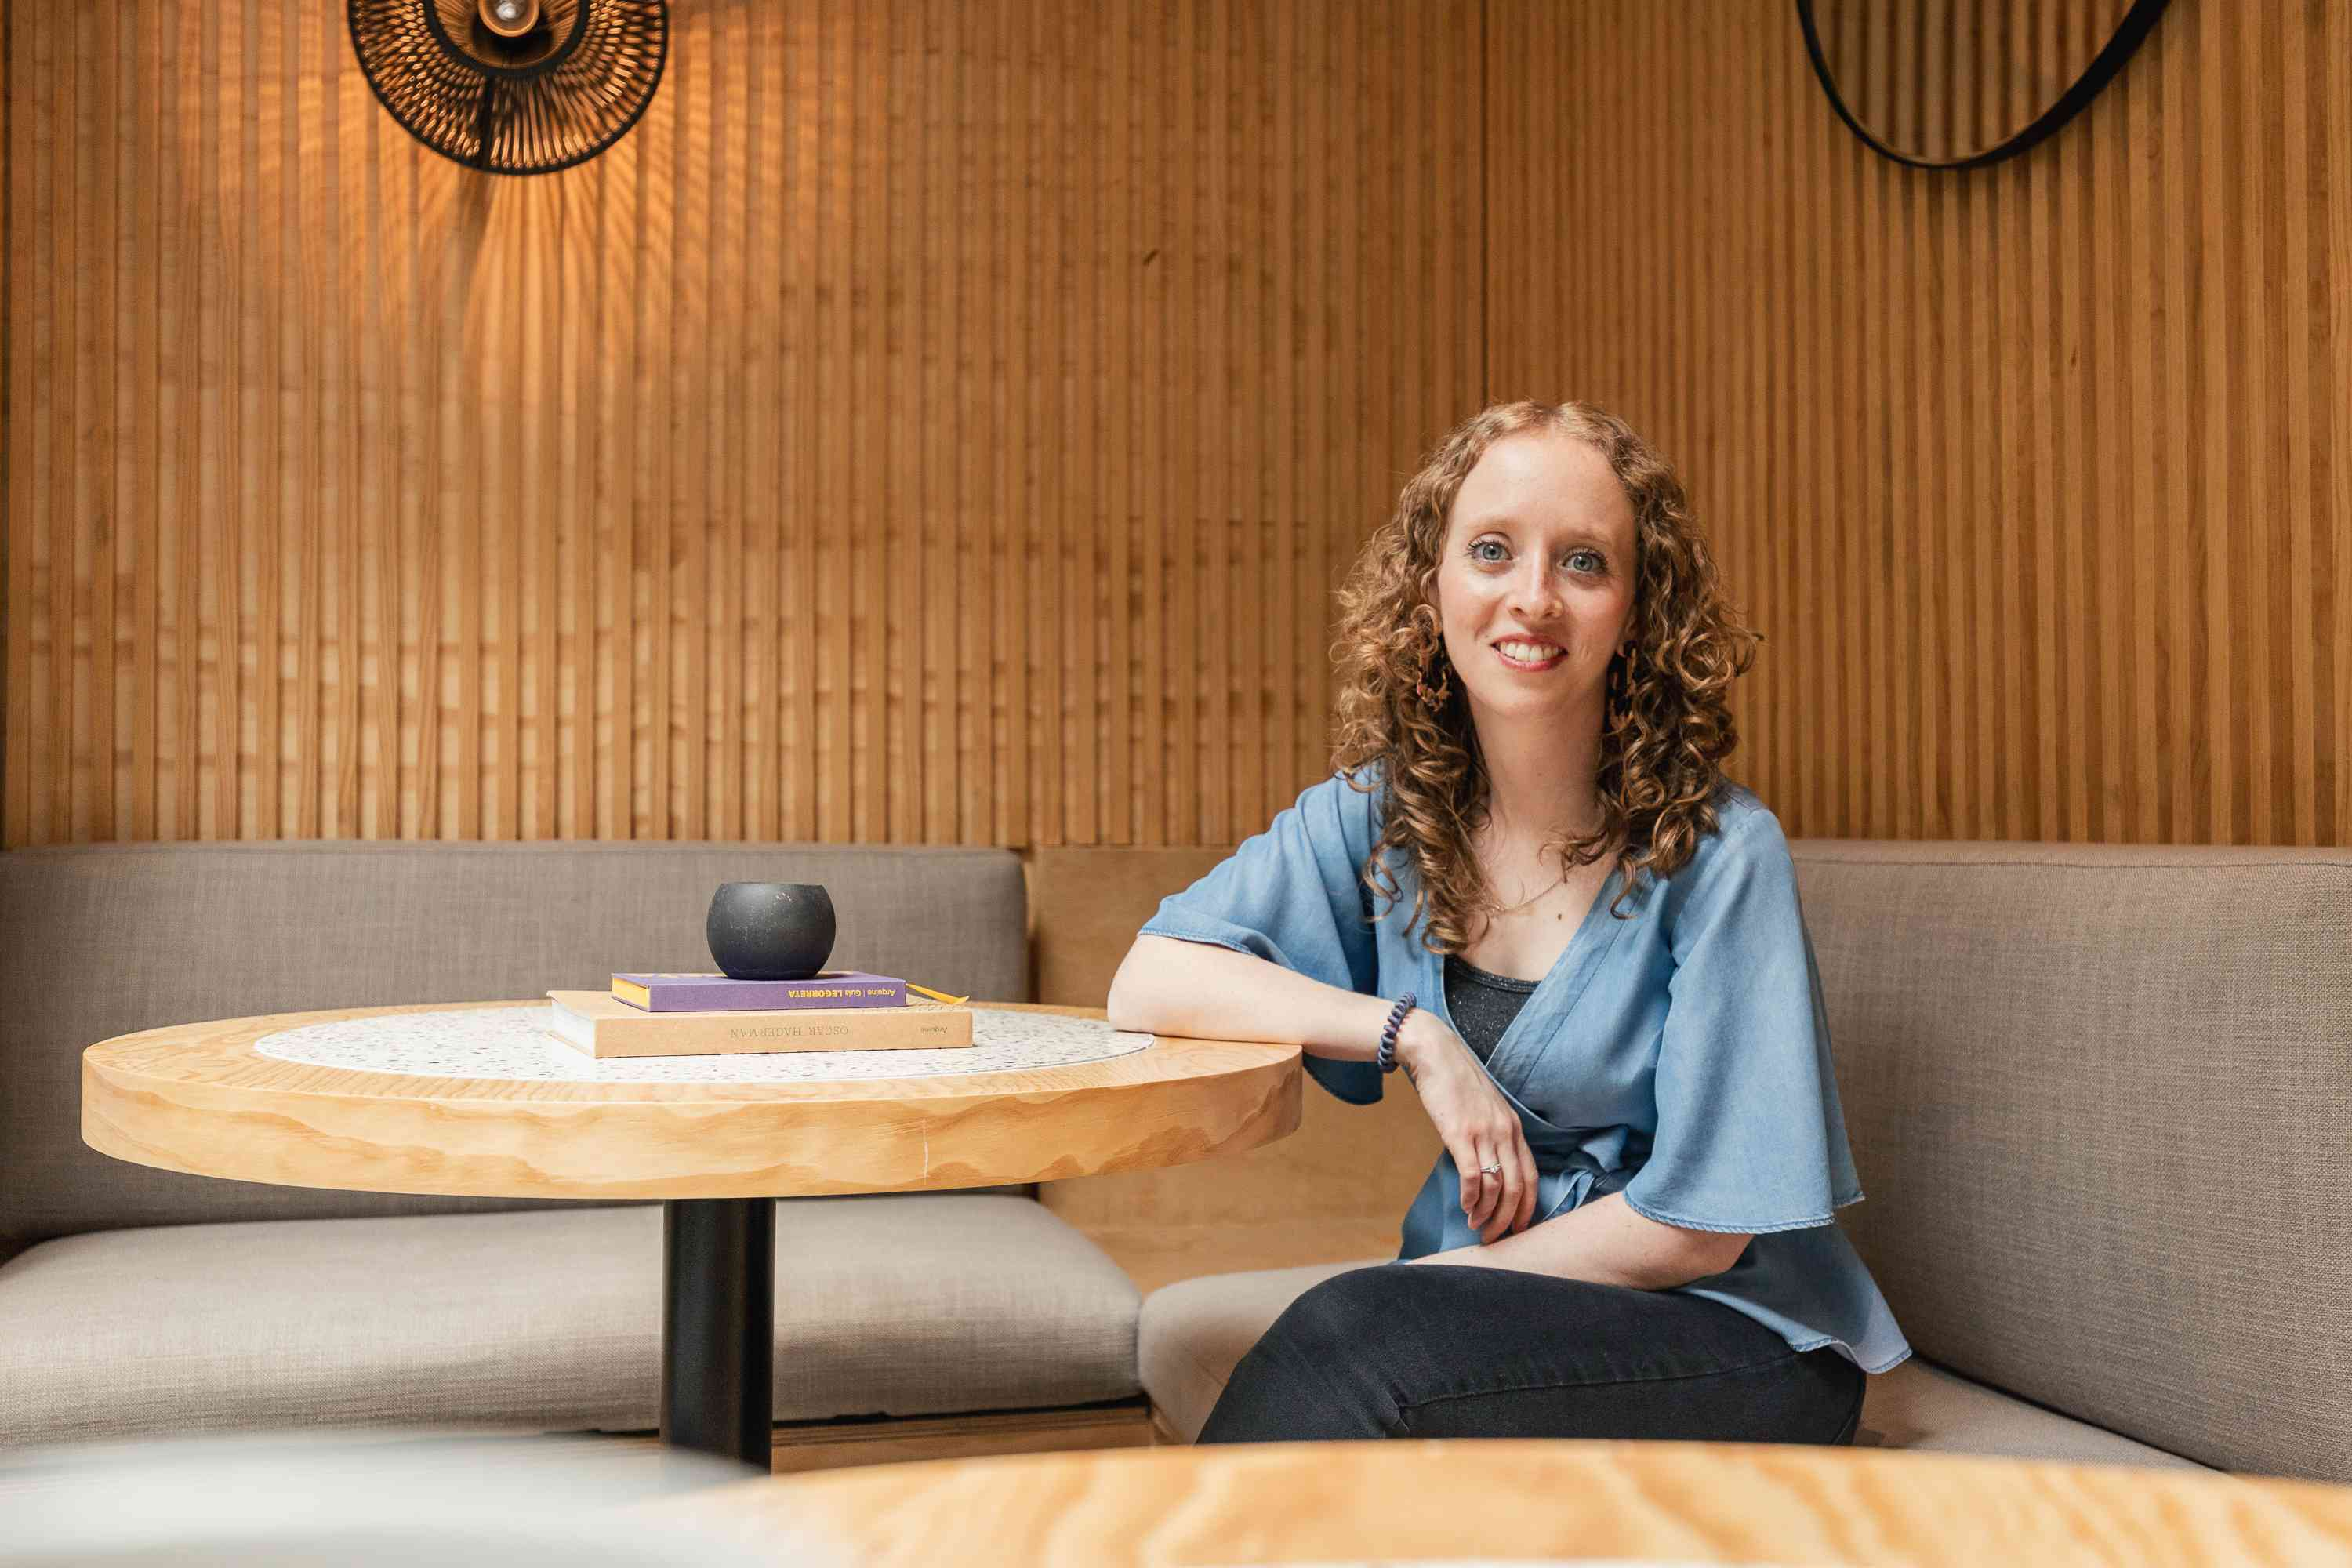 Alexa Backel poses at a wooden table with a textured wall in the background